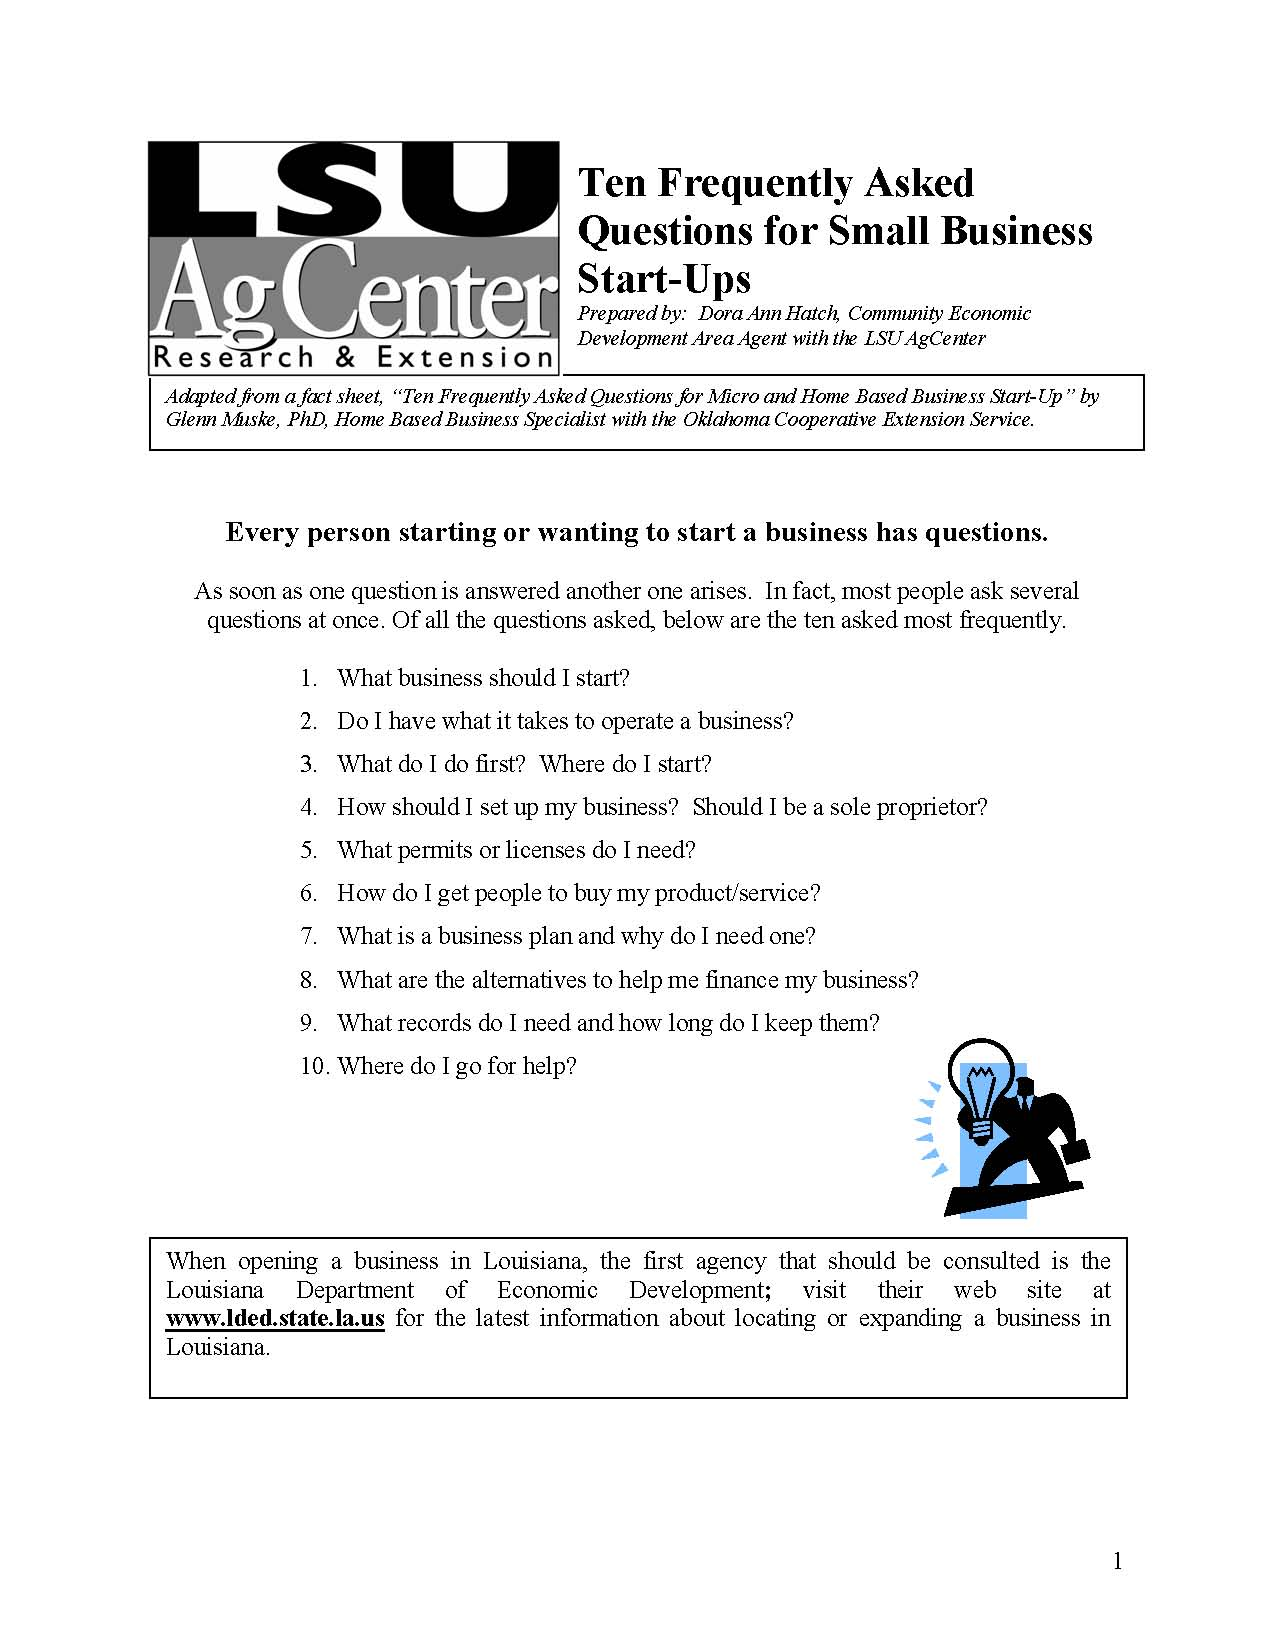 Ten Frequently Asked Questions for Small Business Start-Ups